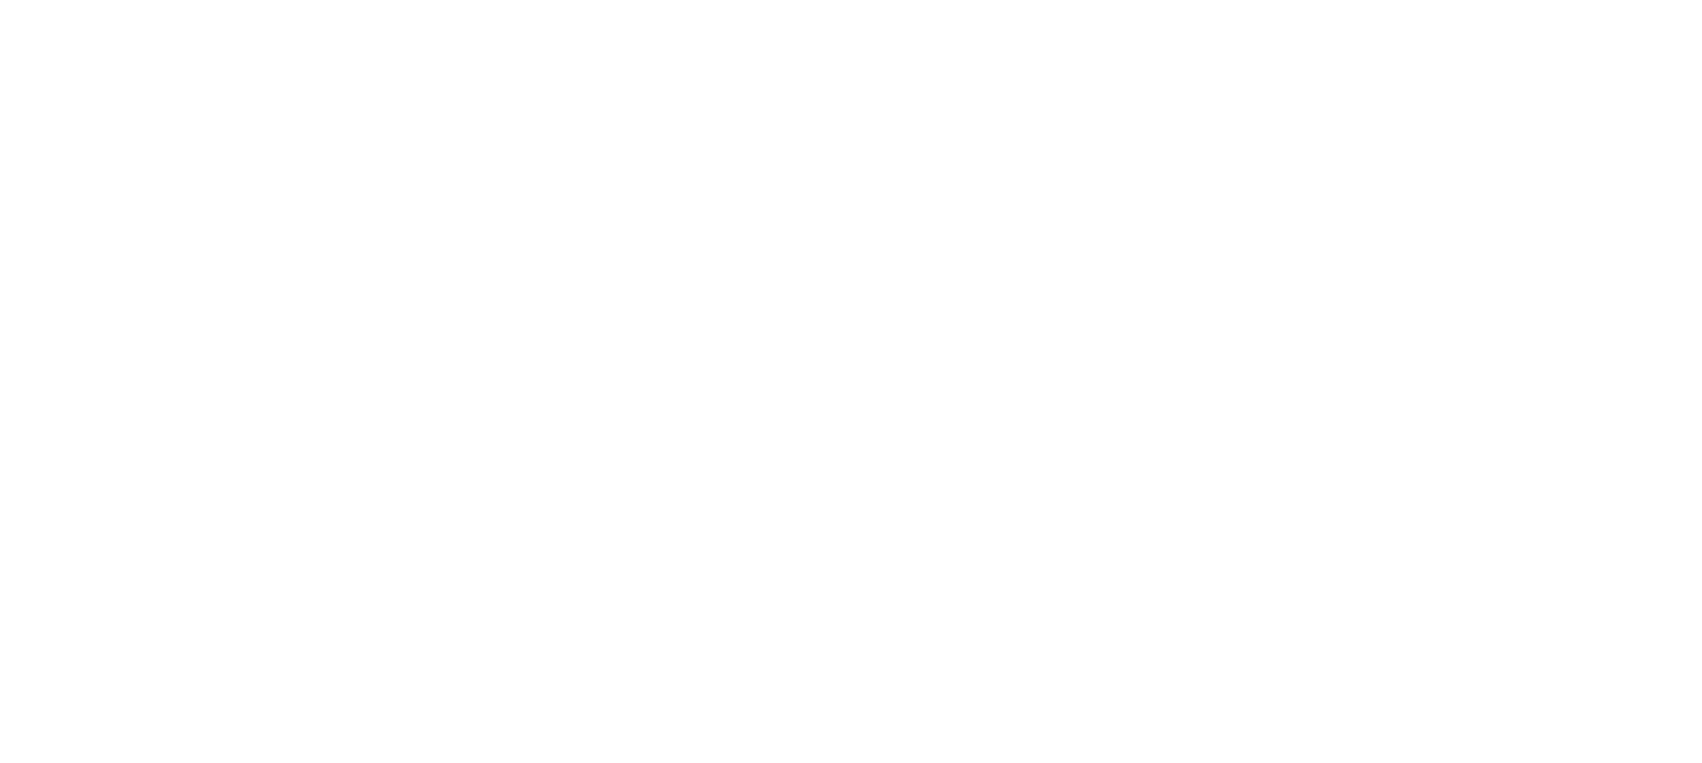 vinna human resources background